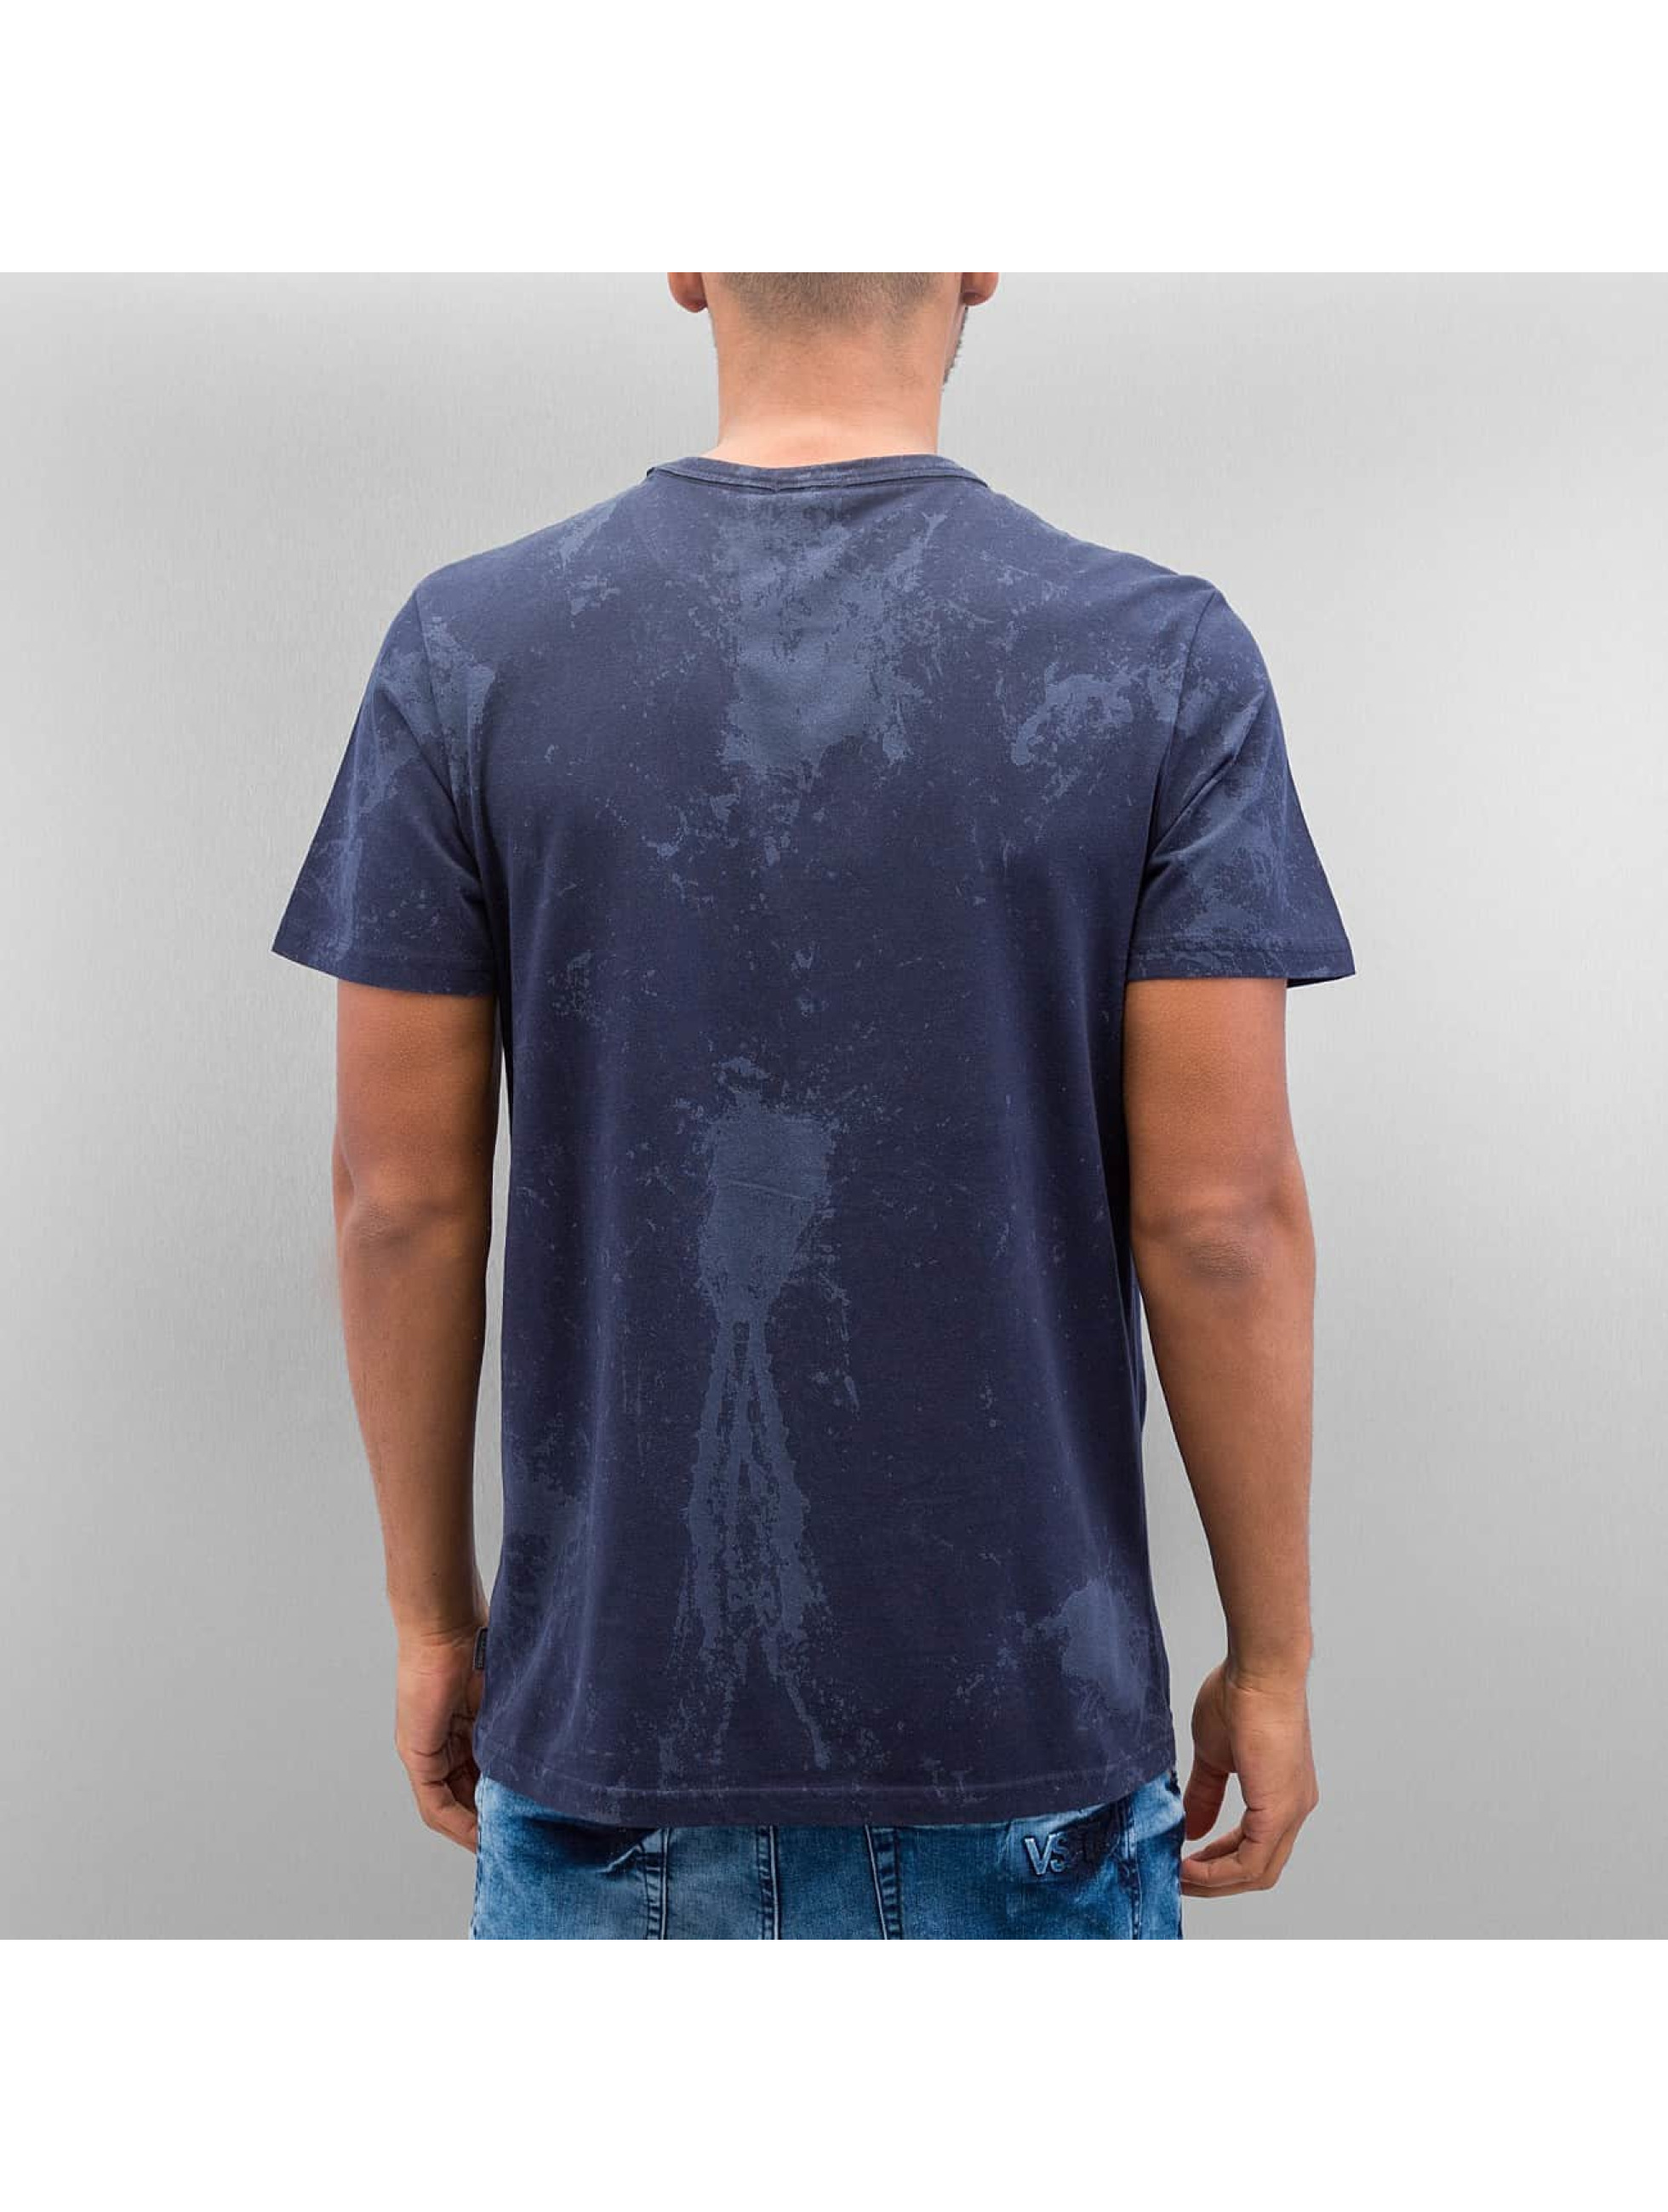 Jack & Jones t-shirt jjorTowel blauw